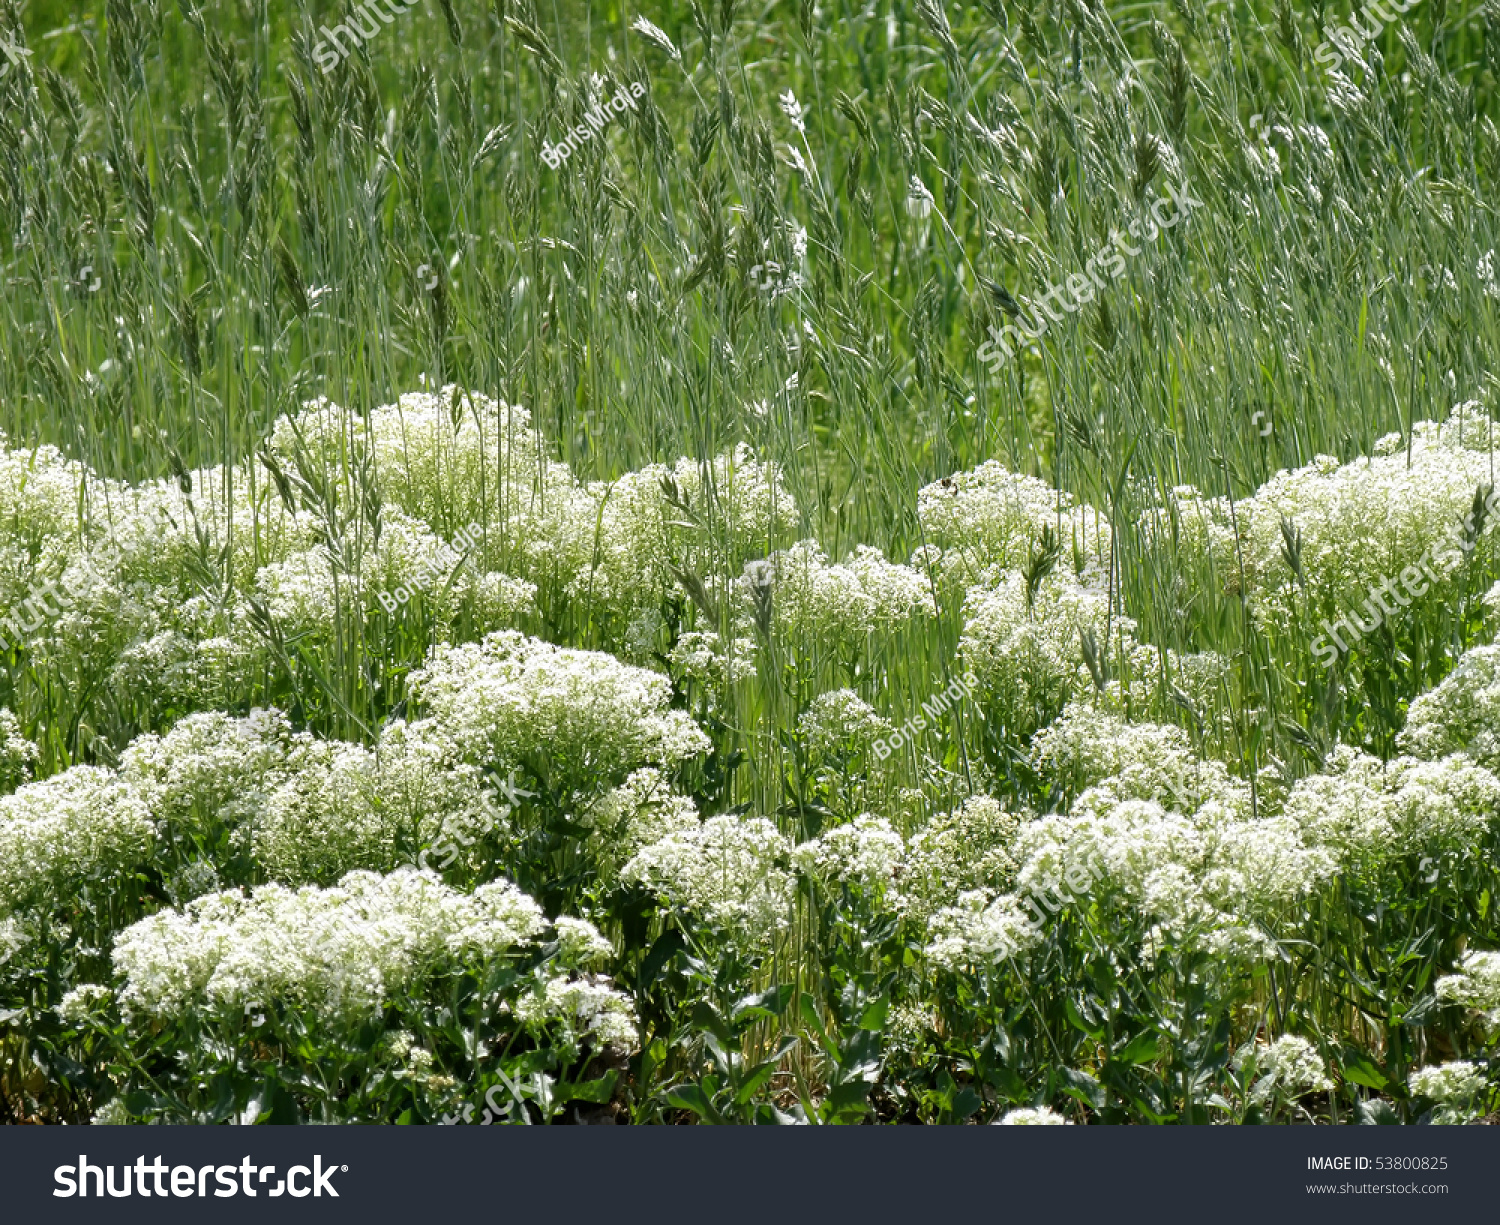 Field Grass White Flowers Wheat Stock Photo Royalty Free 53800825